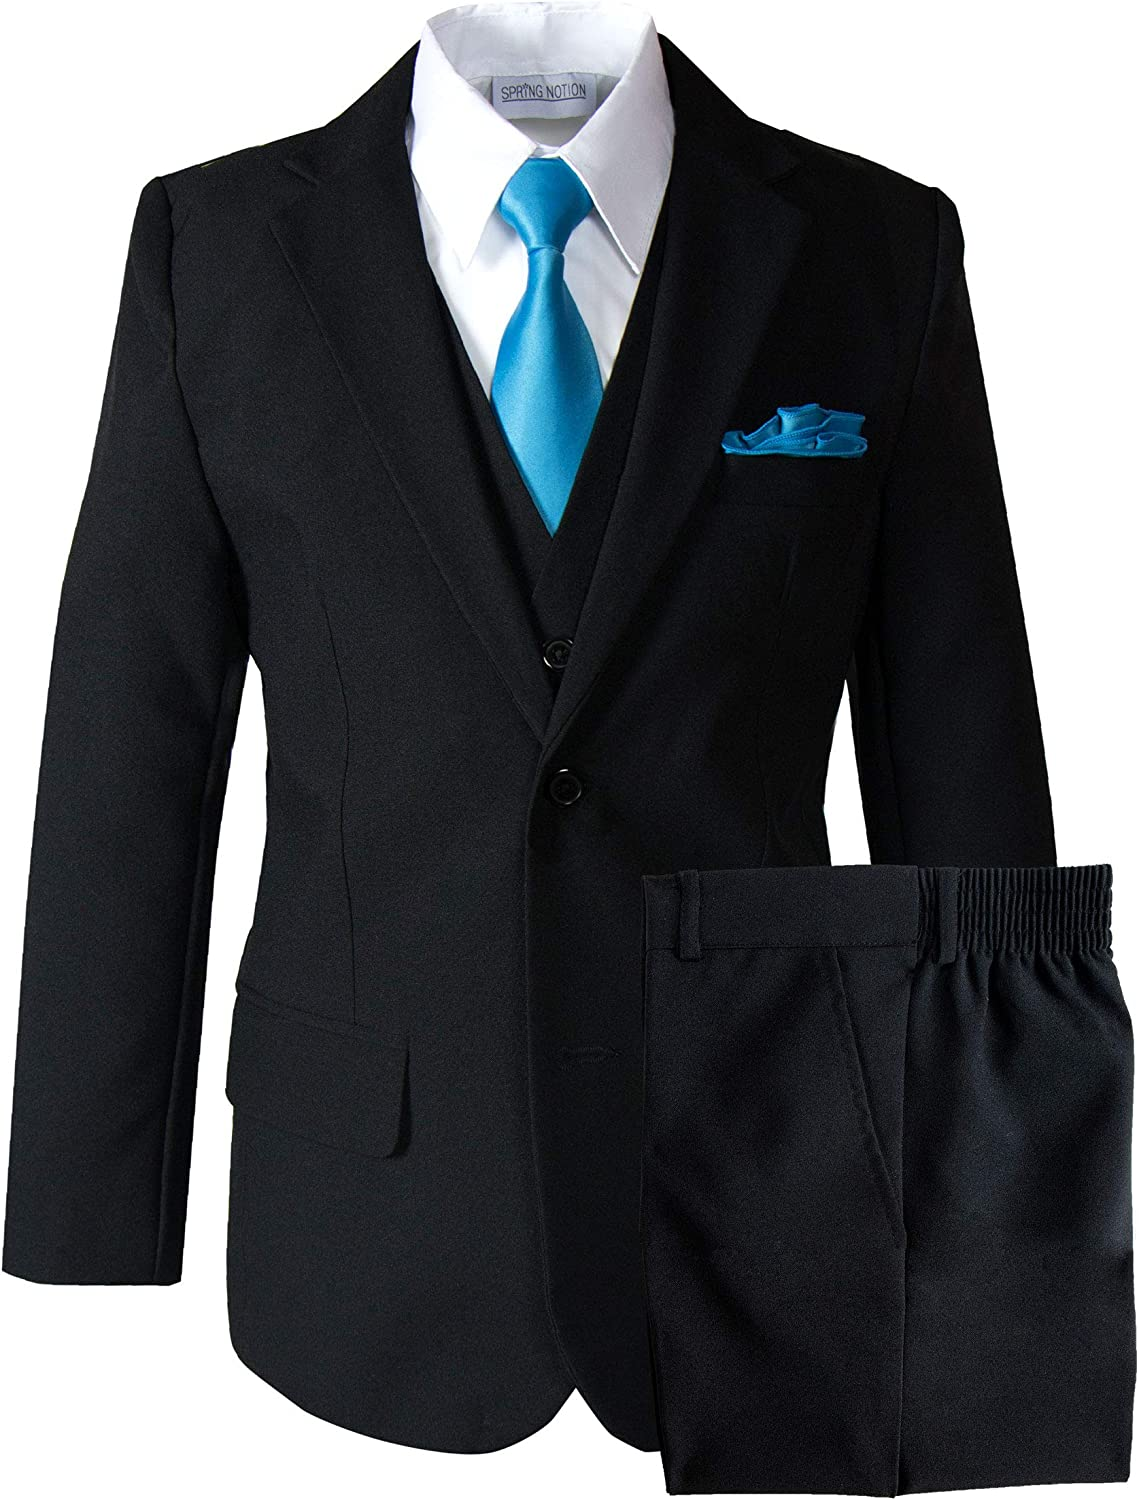 Cheap mail order shopping Spring Notion Big Boys' Modern Tulsa Mall Fit Dress Necktie Set Suit with a